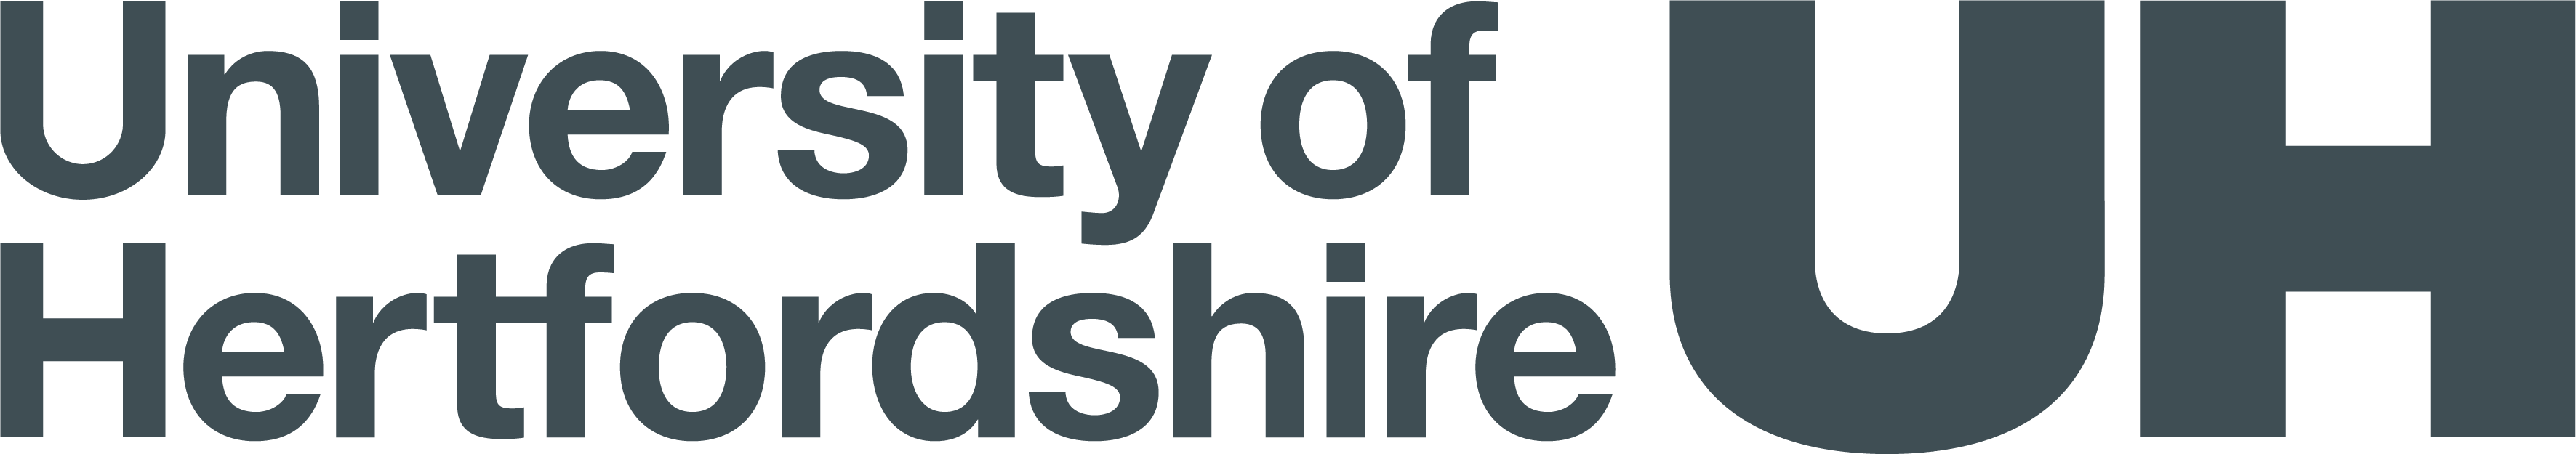 "logo with text ""University of Hertfordshire UH"""